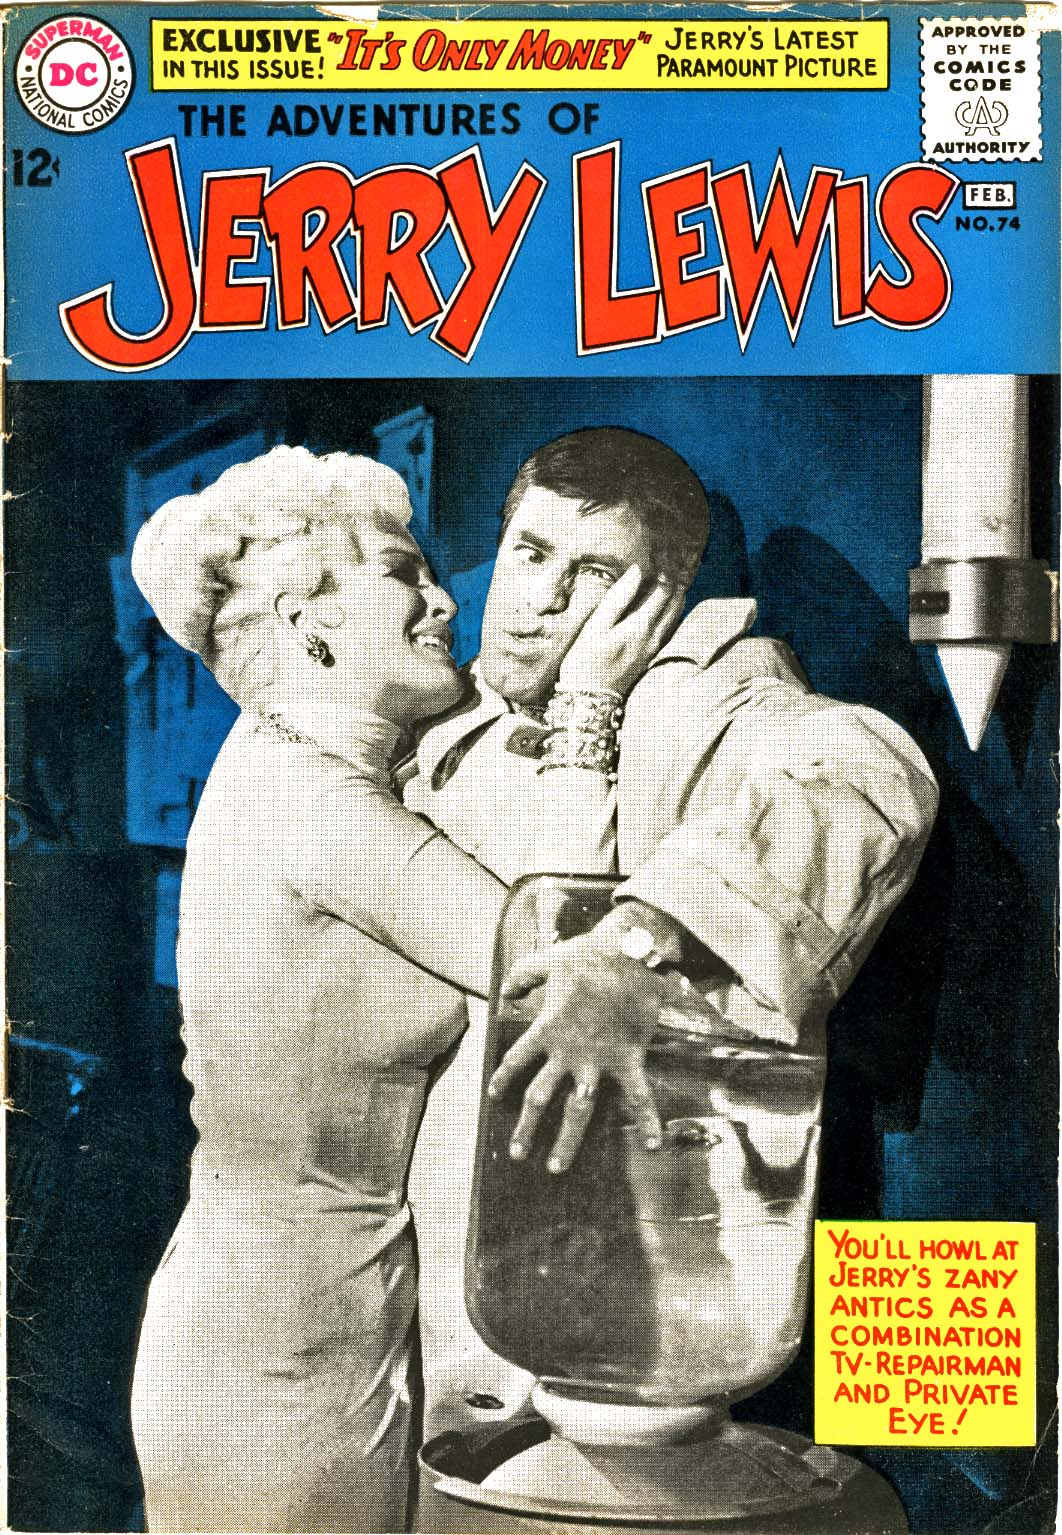 The Adventures of Jerry Lewis 74 Page 1